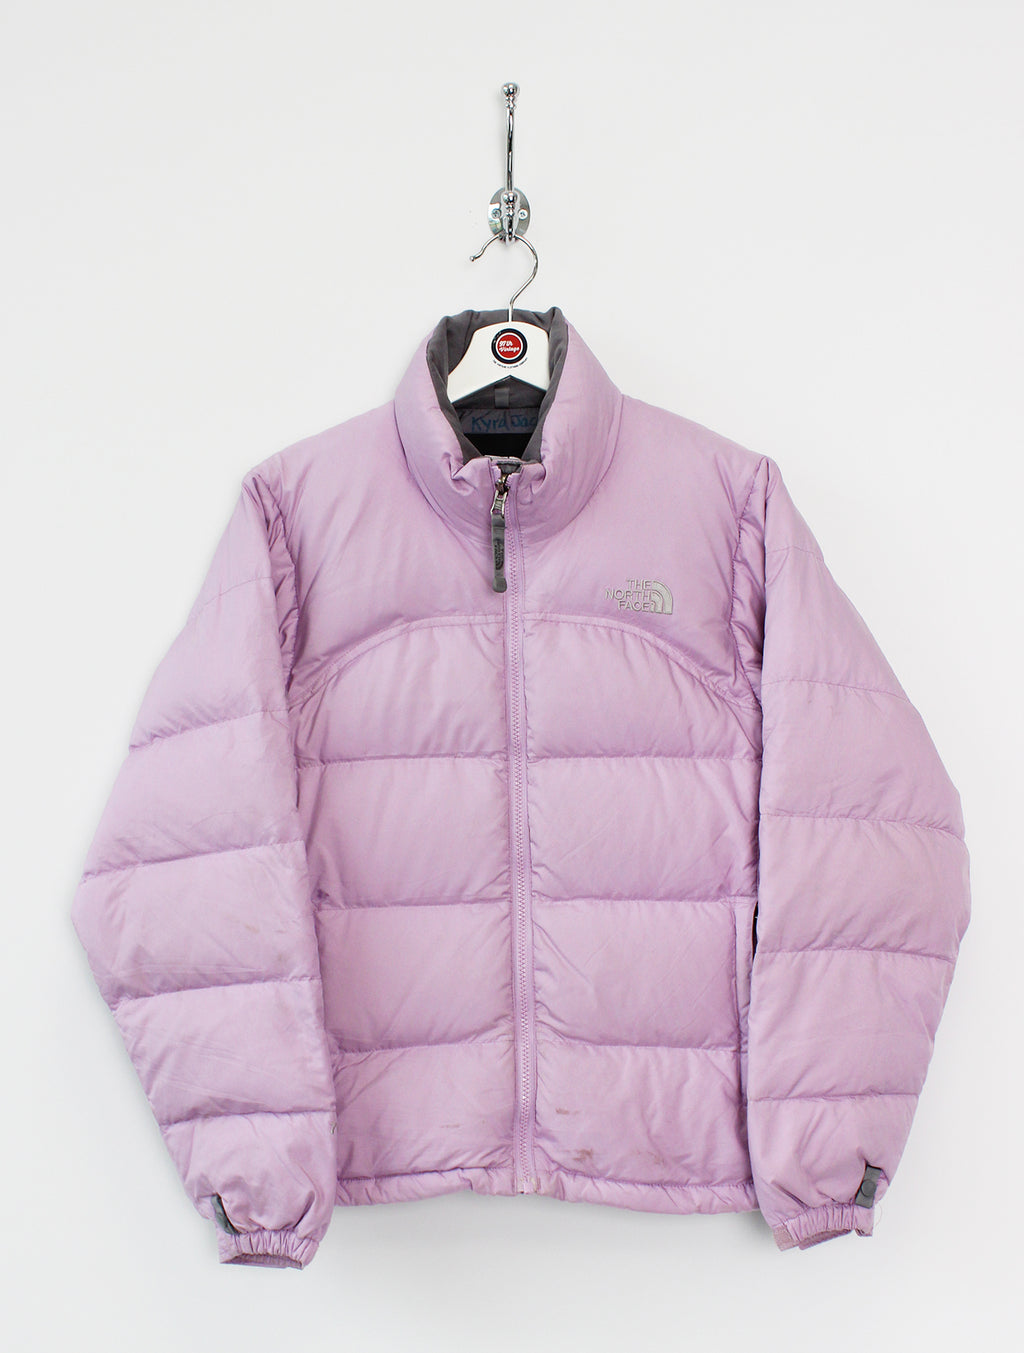 Women's The North Face 700 Nuptse Puffer Coat (S)